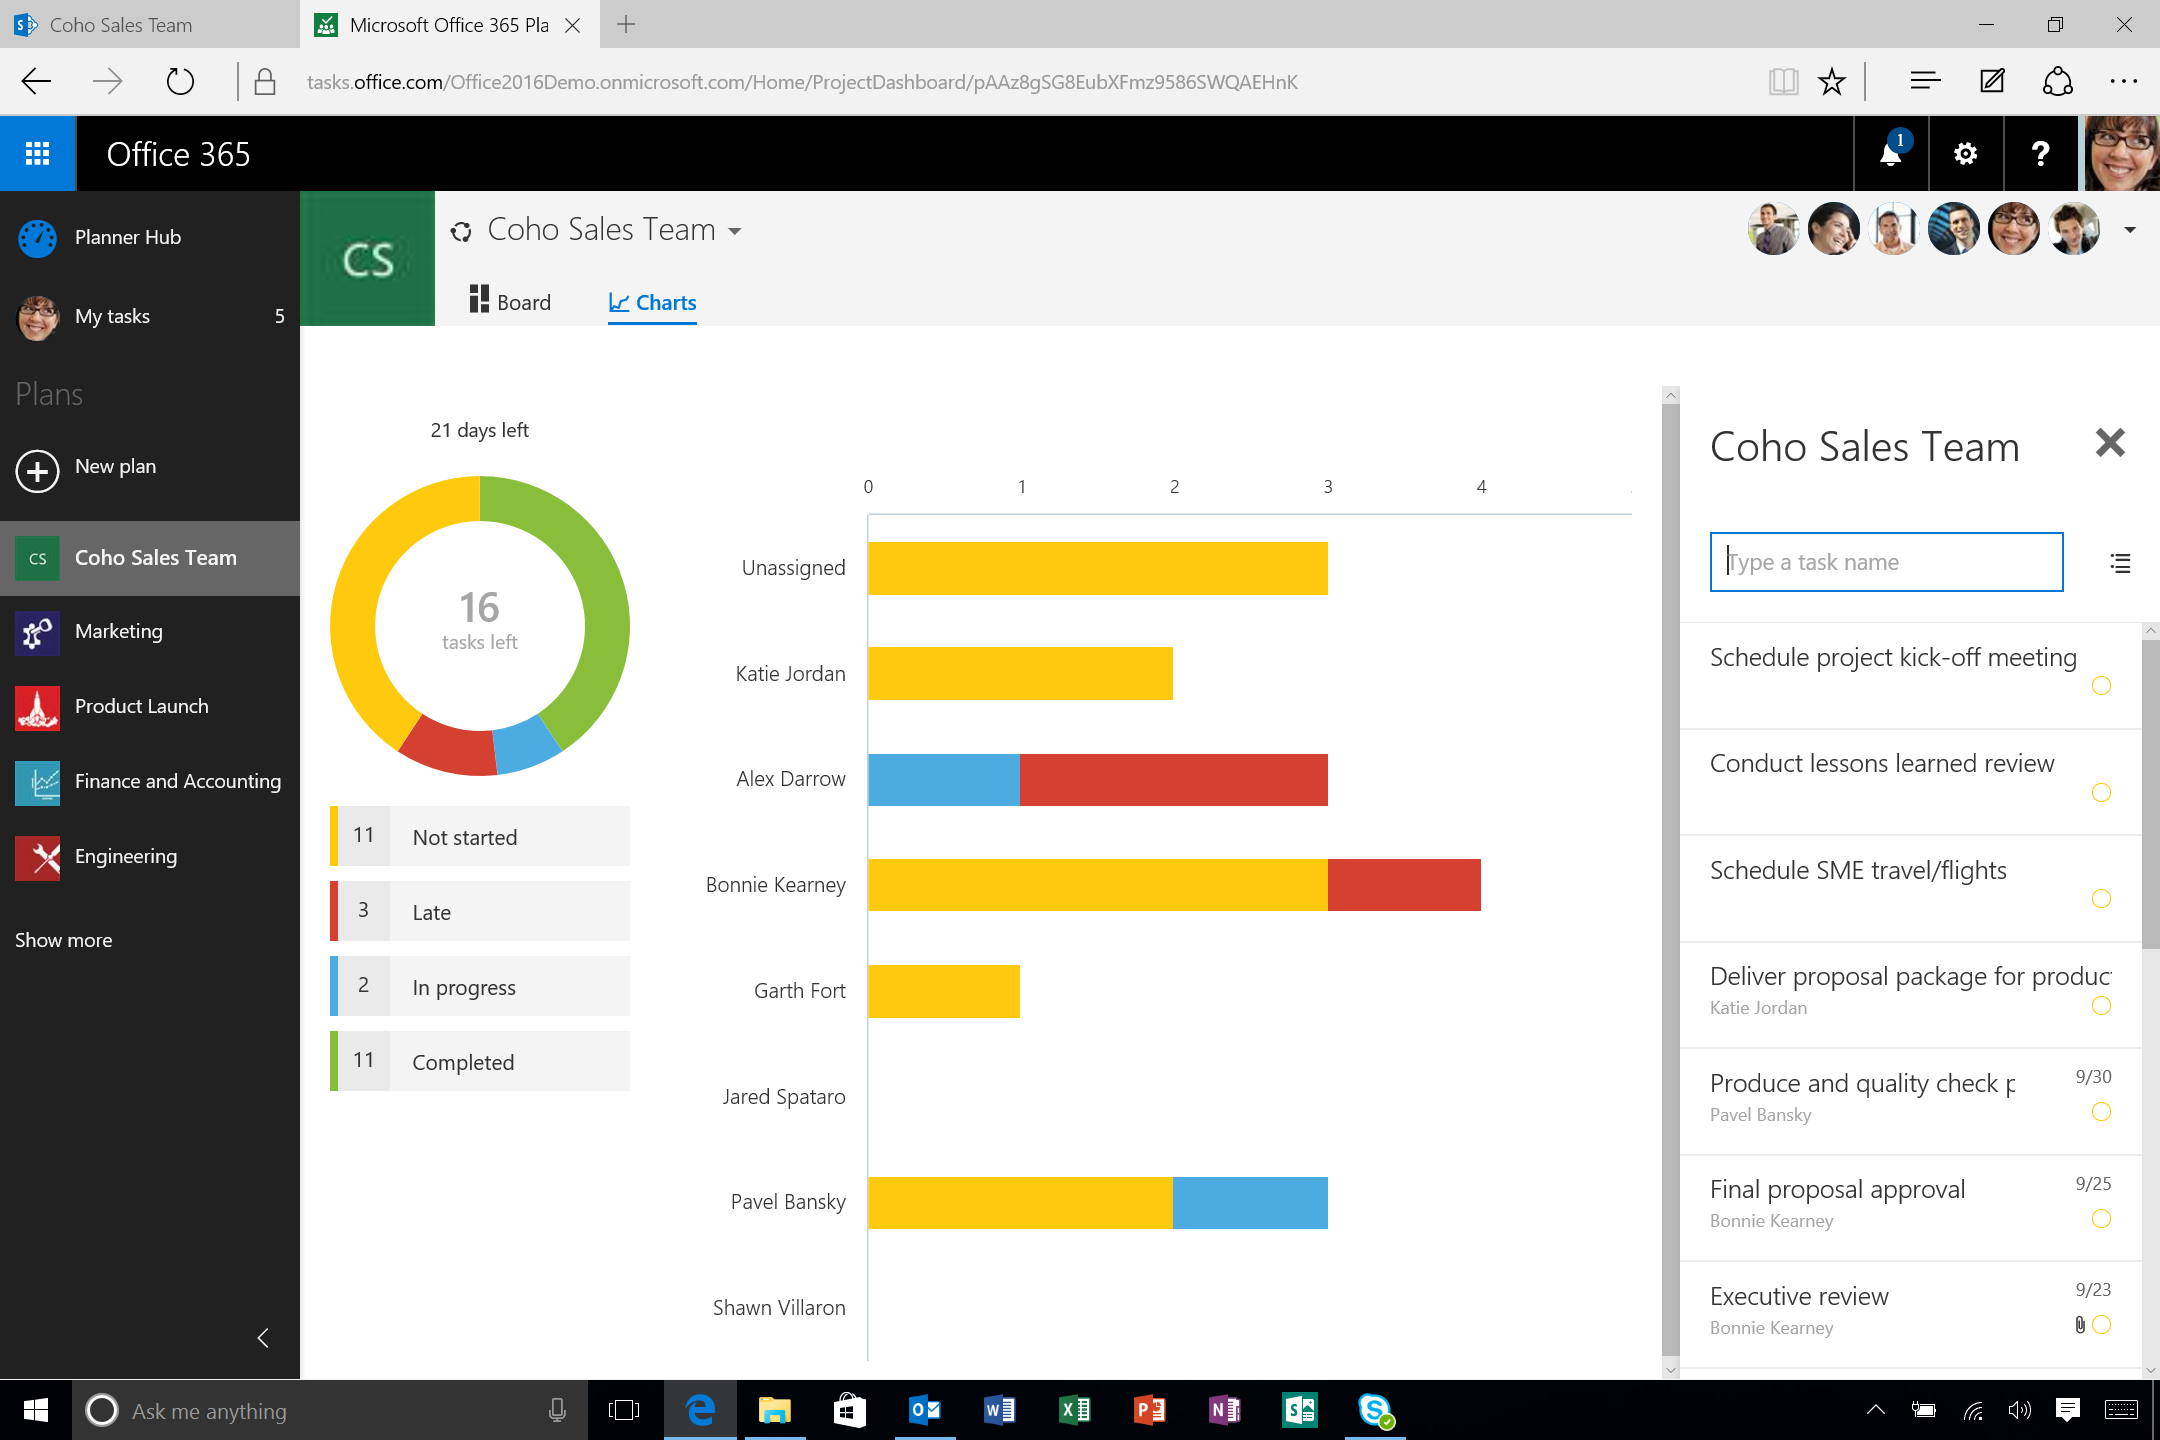 Office 365 Planner Charts View for Team Collaboration.